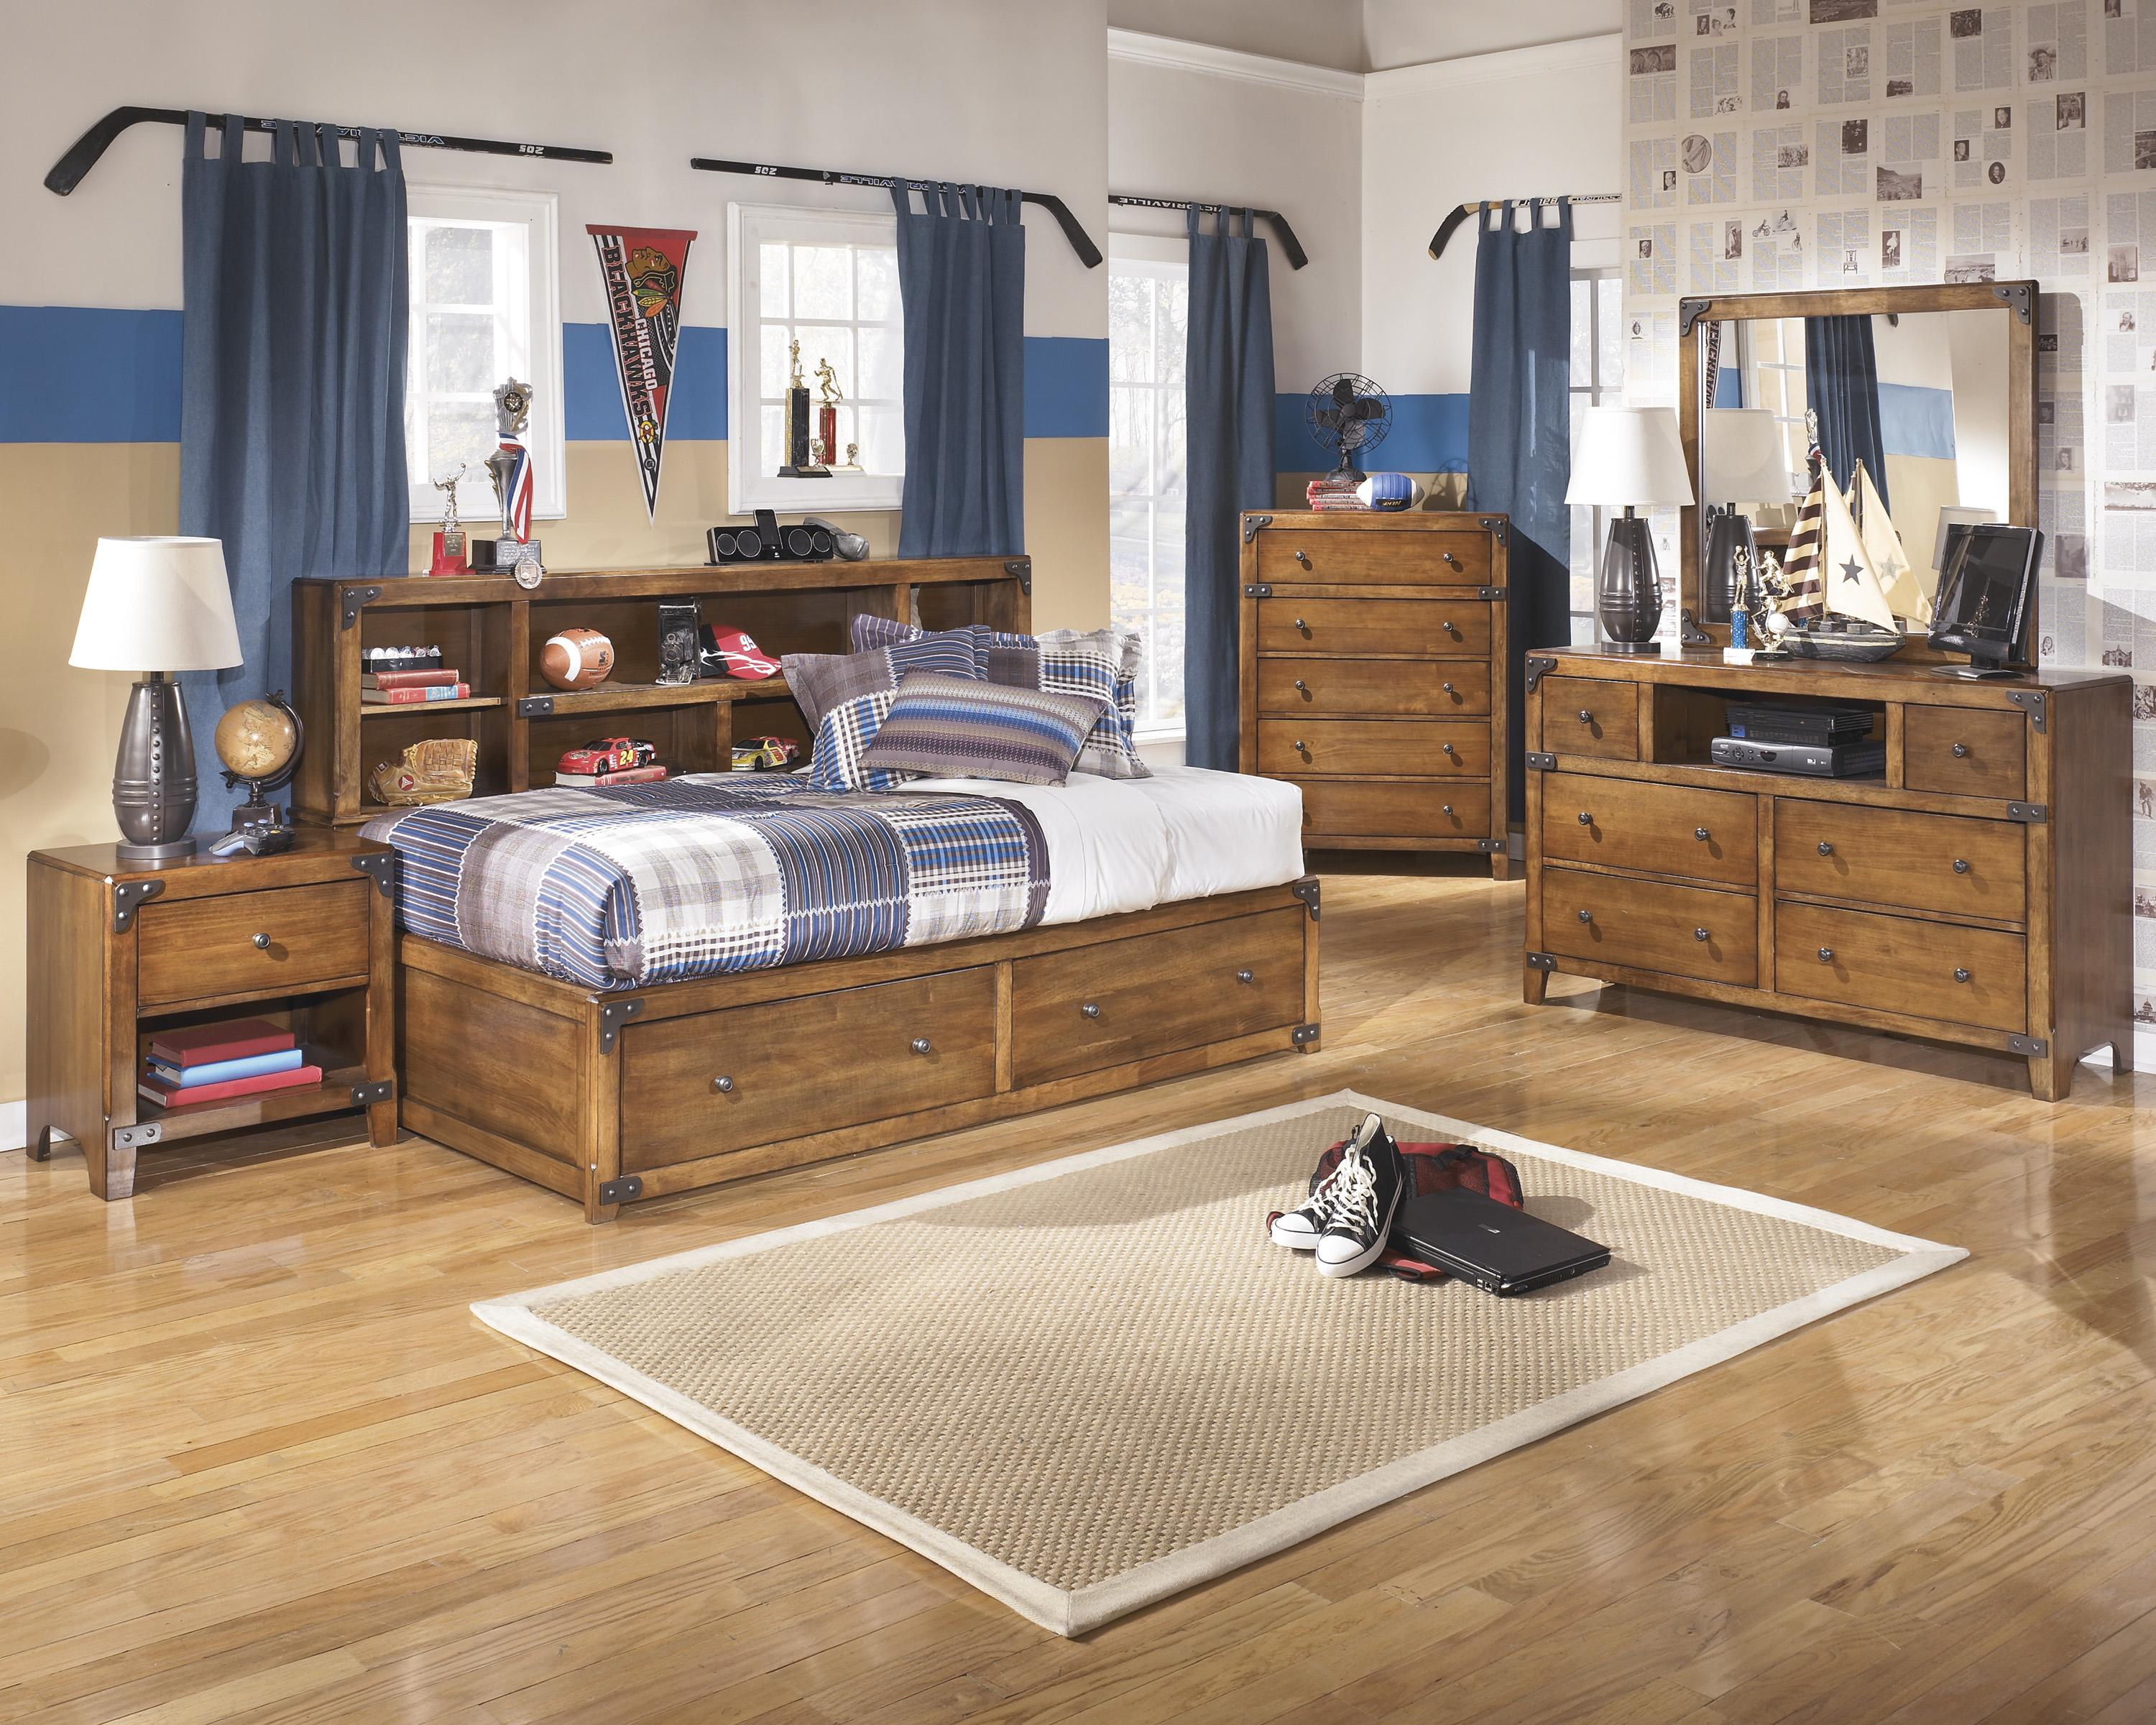 Signature Design by Ashley Delburne Twin Bedroom Group - Item Number: B362 T Bedroom Group 1